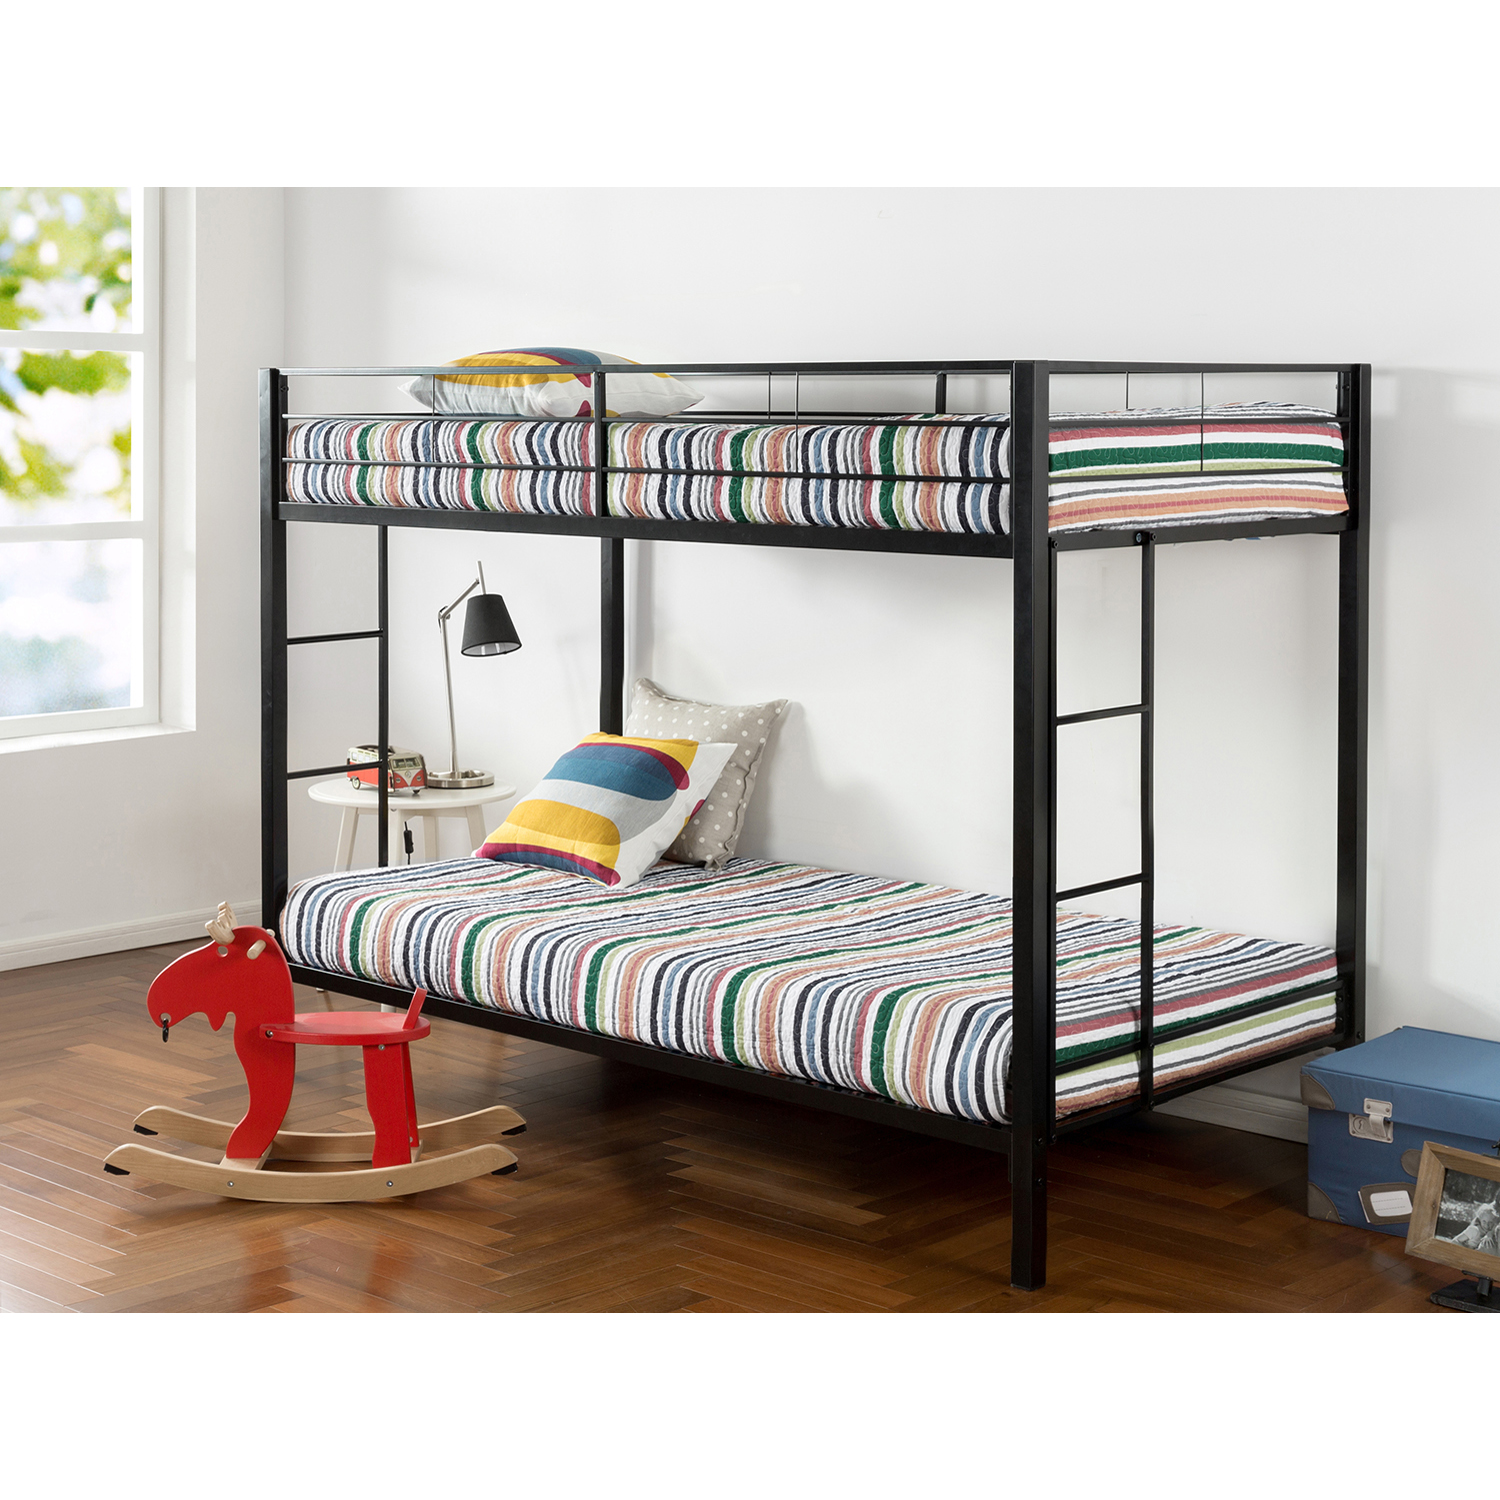 Zinus Easy to Assemble Twin over Twin Classic Quick Lock Metal Bunk Bed with Dual Ladders